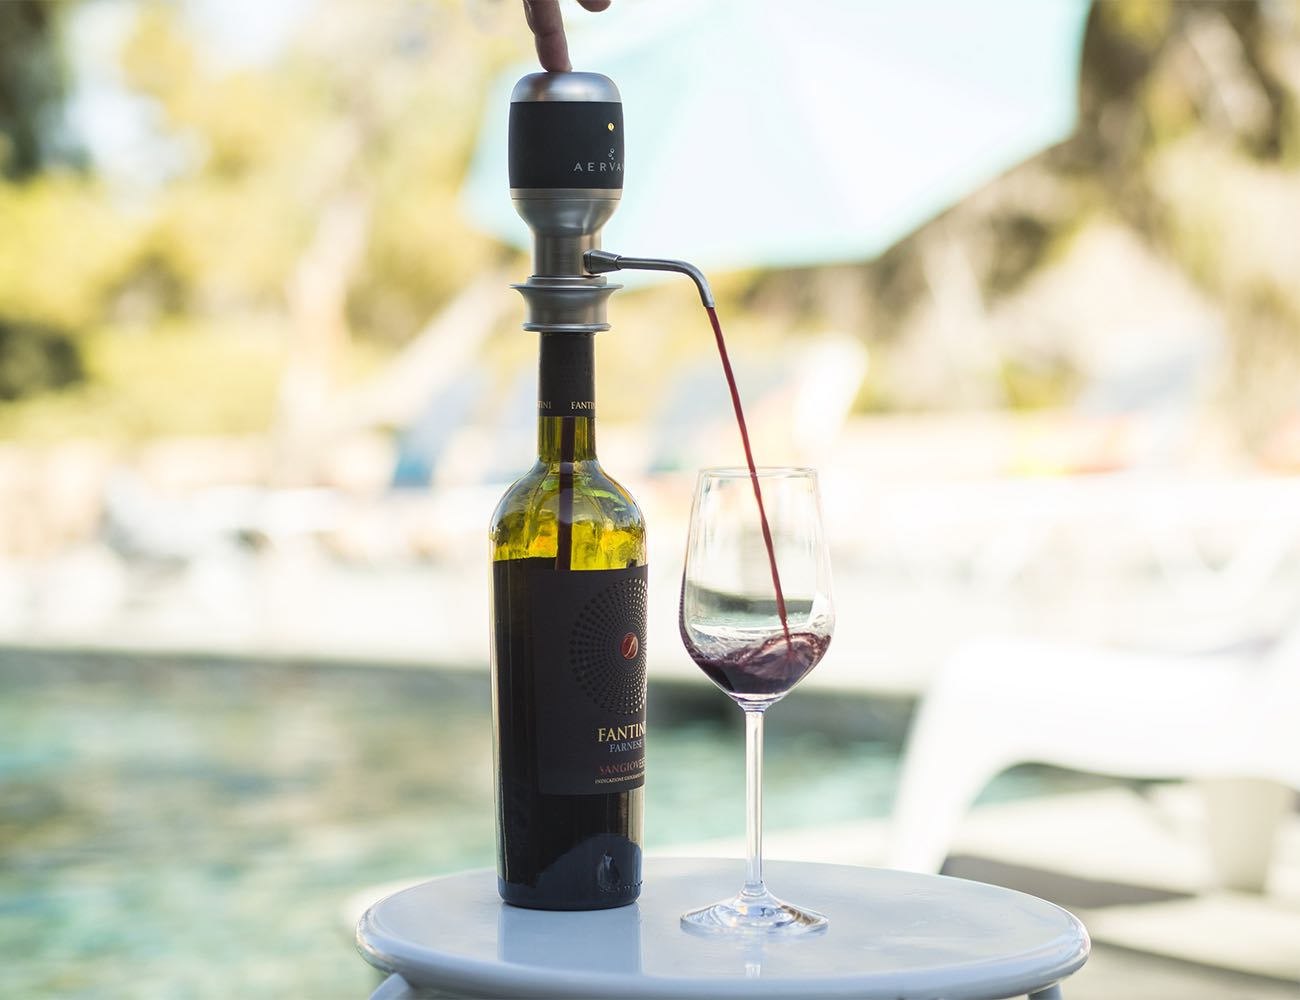 Aervana - The Worlds First Electric Wine Aerator